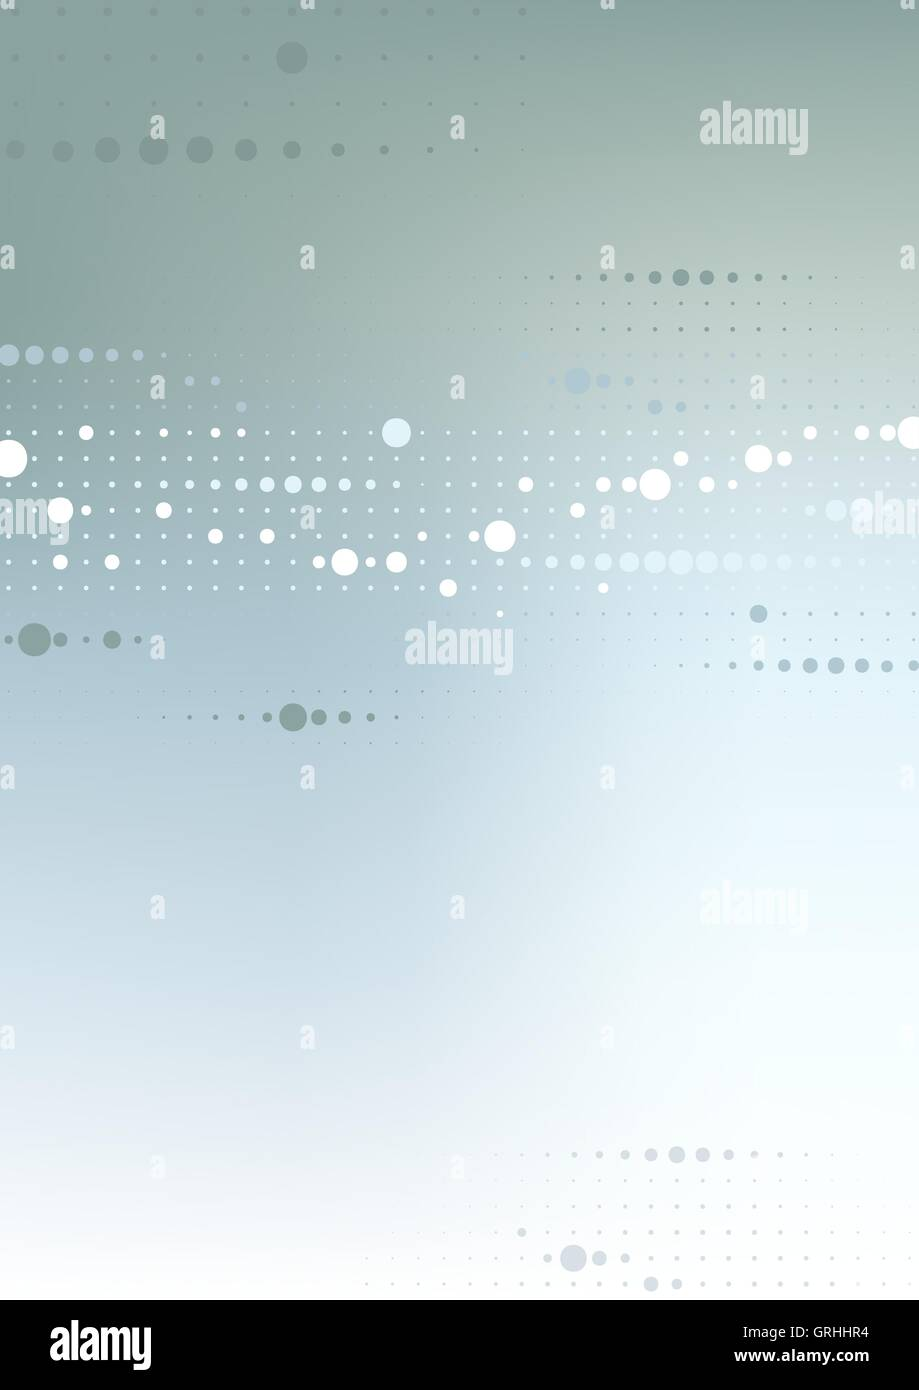 Dotted Tech Background - Stock Image